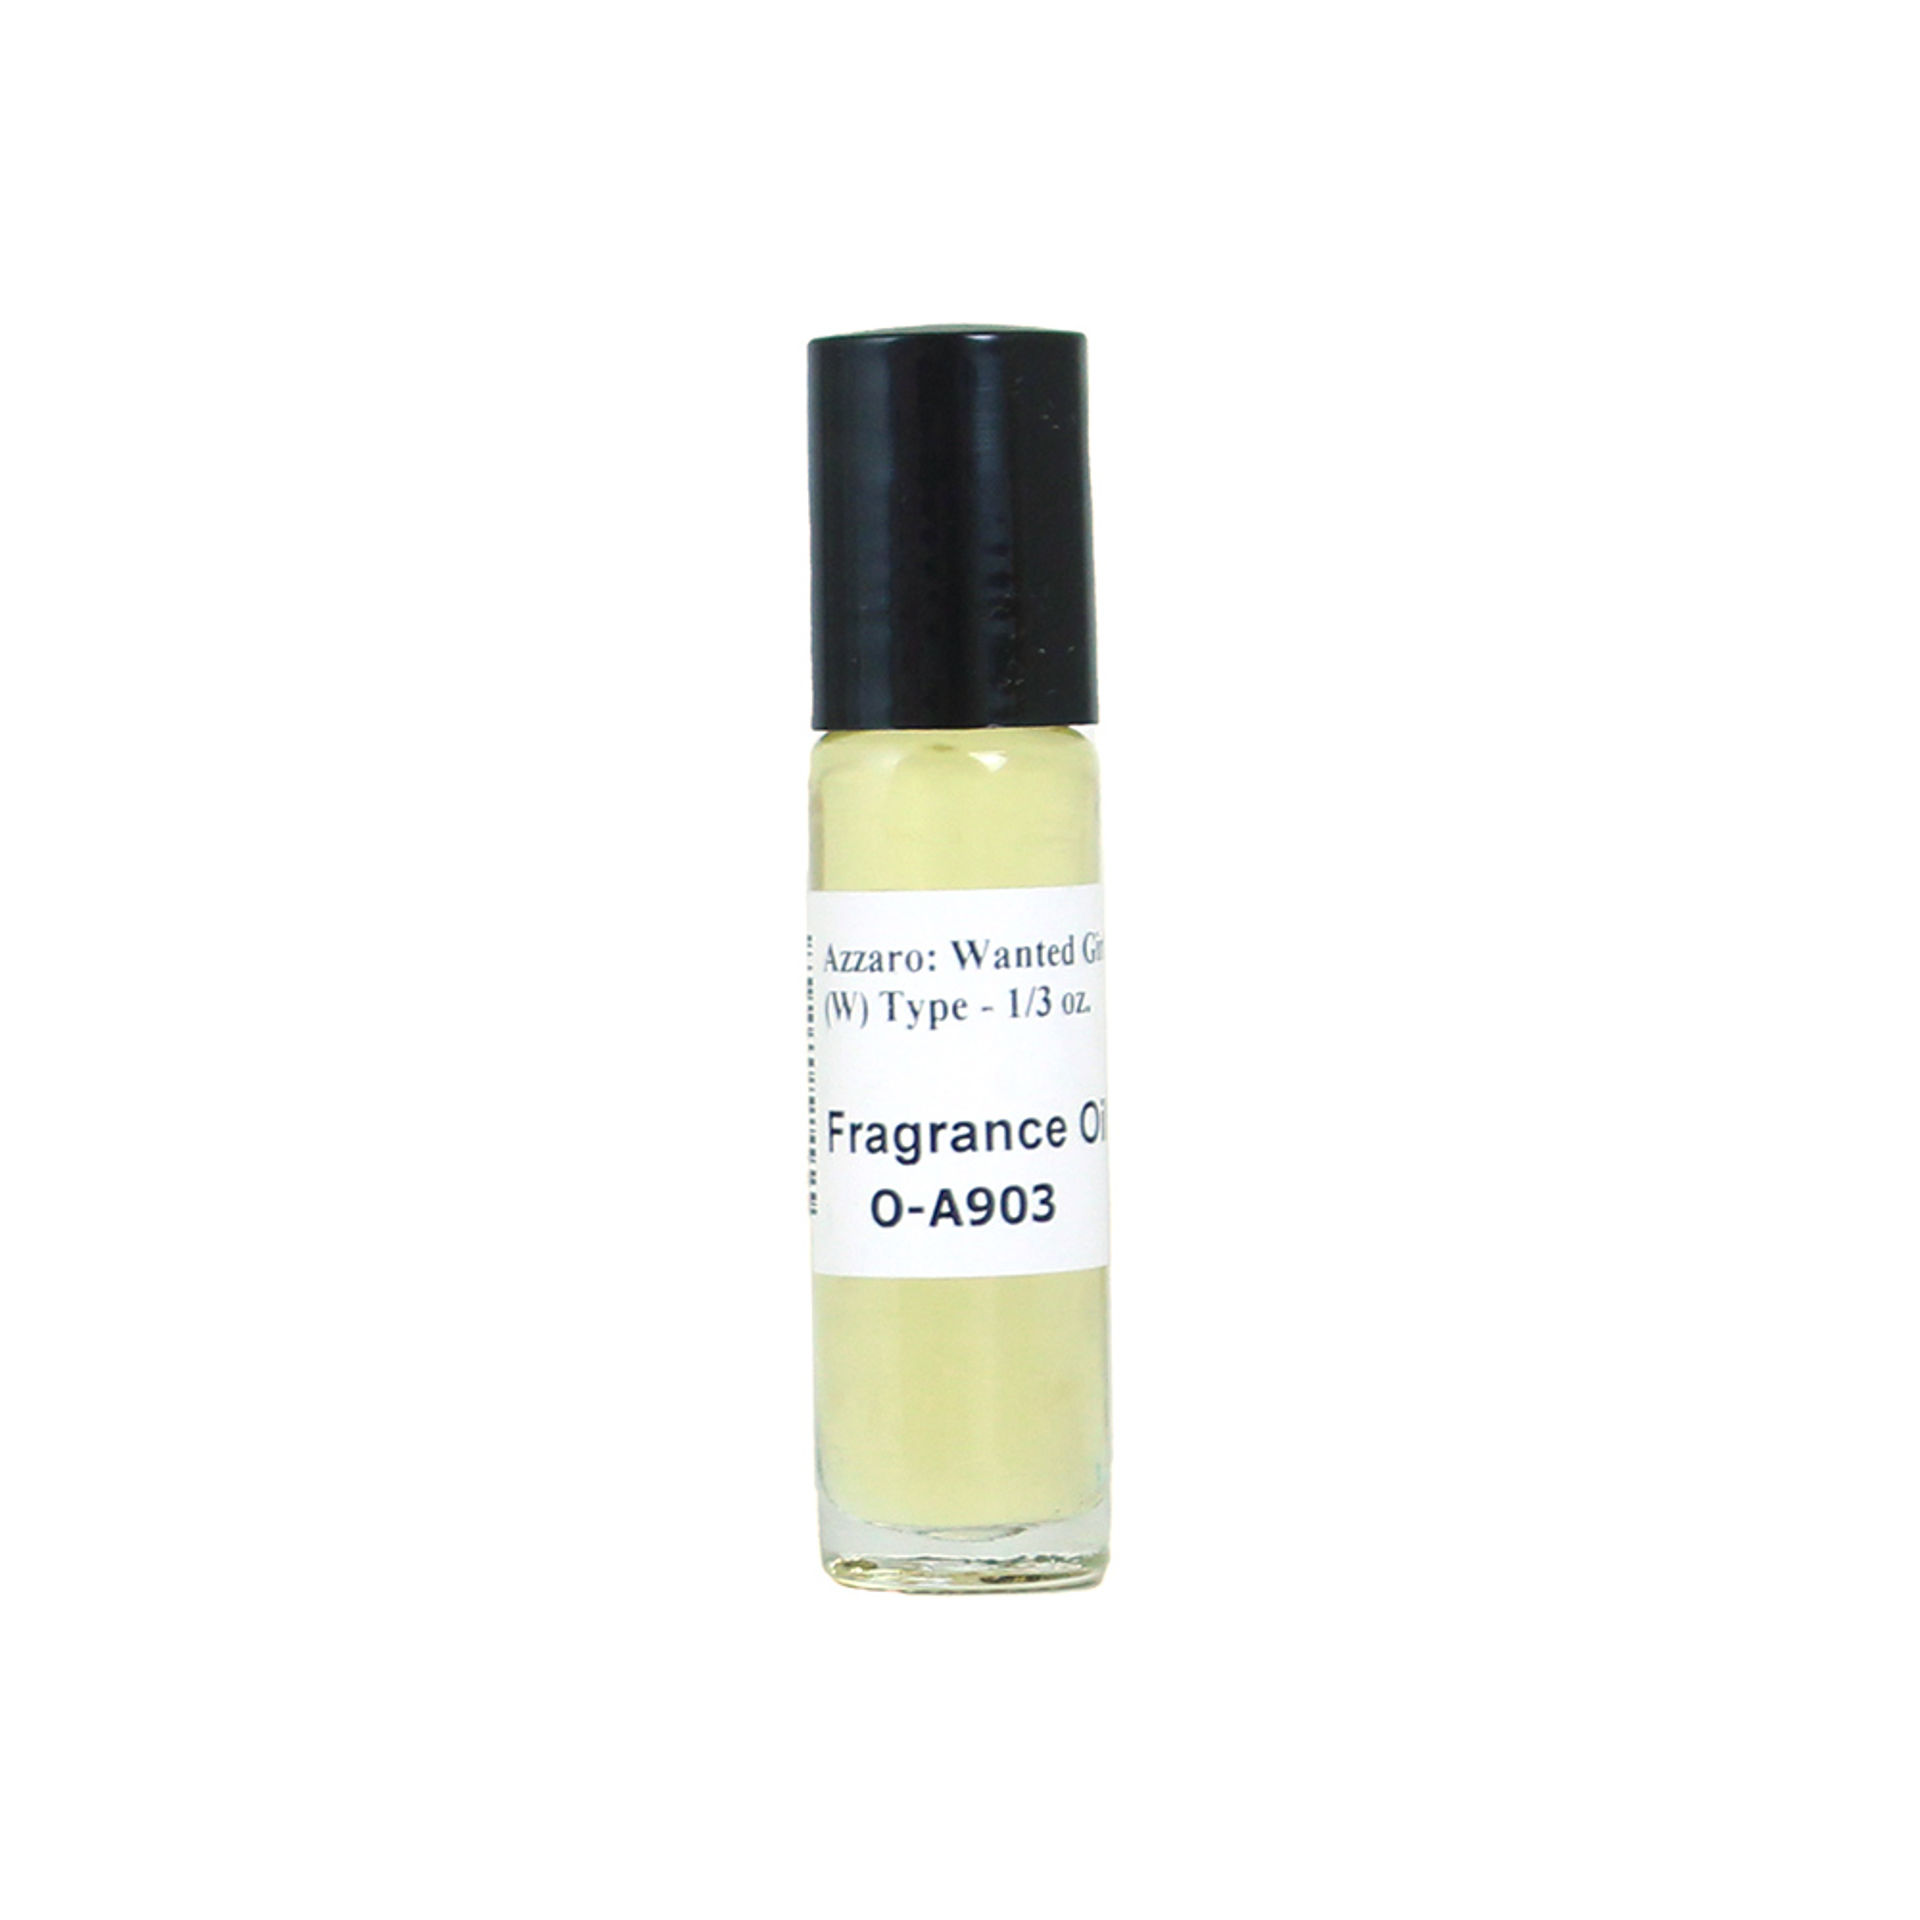 Picture of Azzaro: Wanted Girl (W) Type - 1/3 oz.